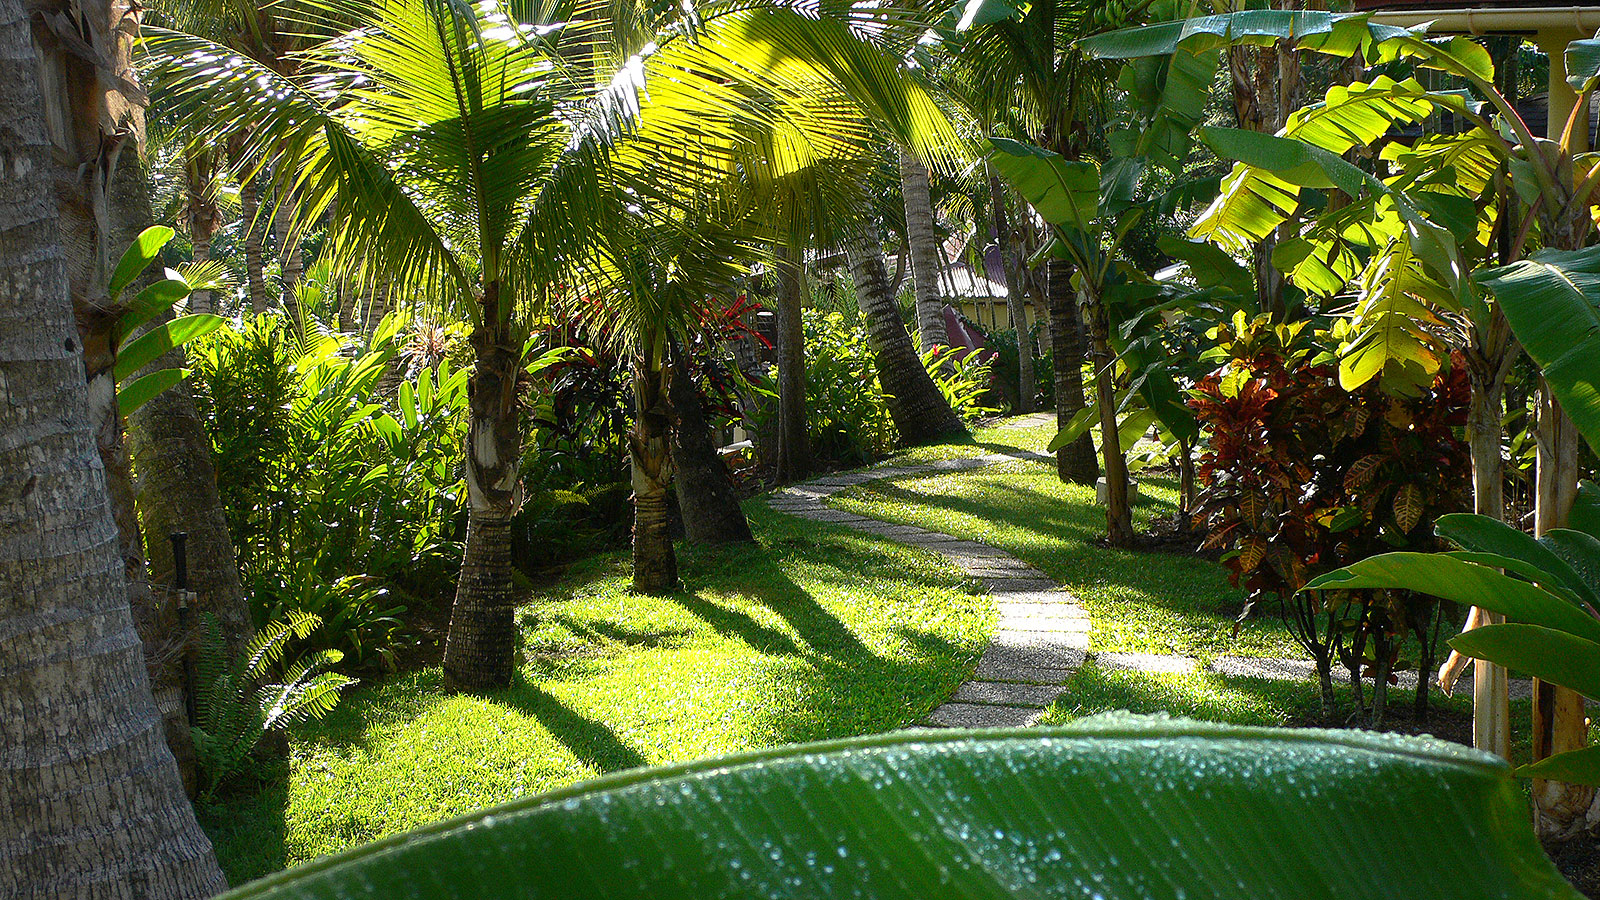 Habitation grande anse for Jardin tropical guadeloupe